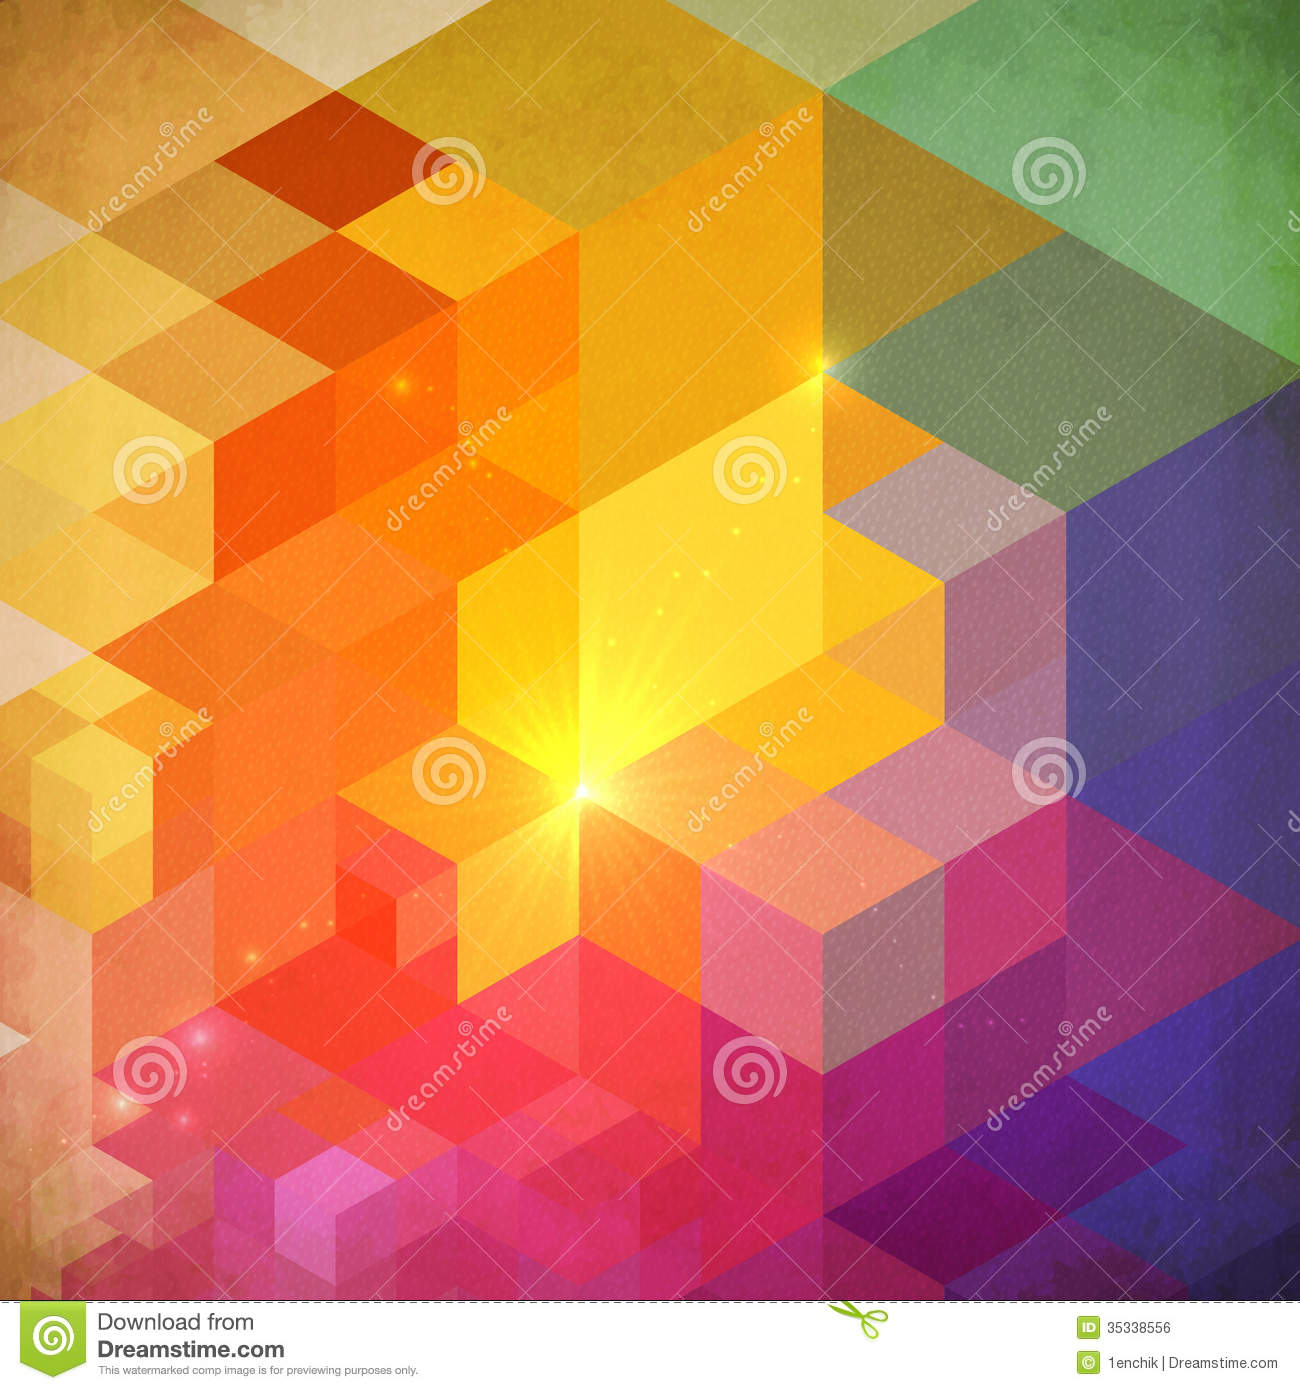 Vibrant Colorful Abstract Geometry Background Stock Vector